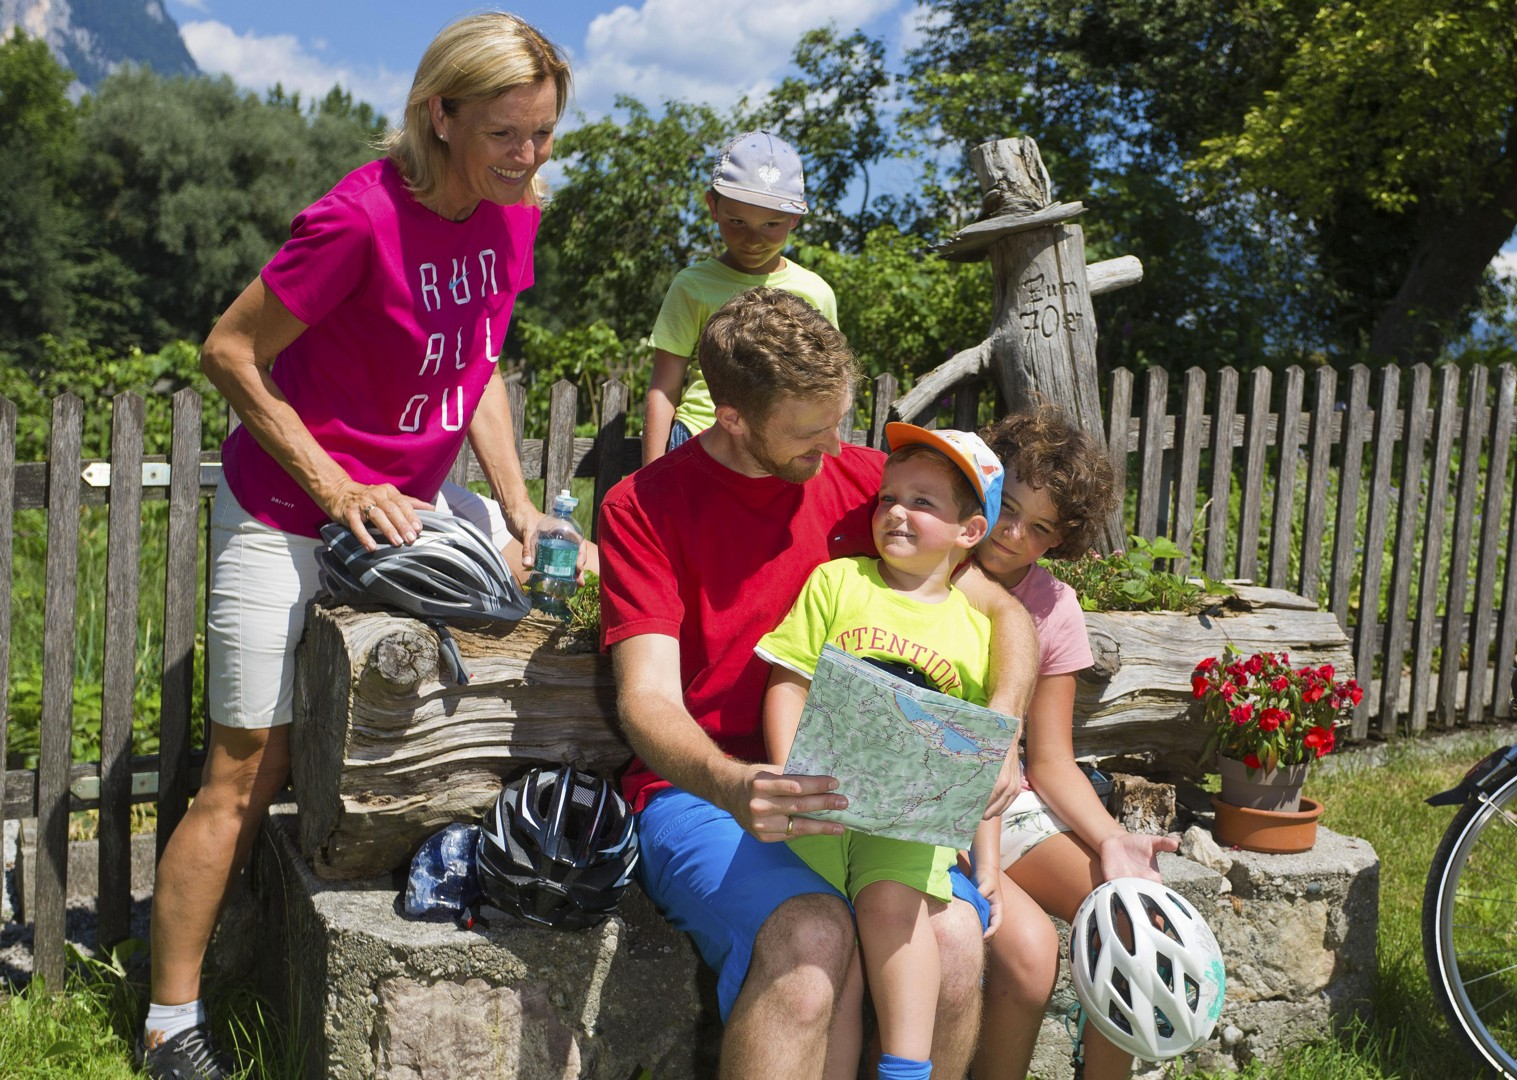 family-good-times-austria-holiday-cycling-skedaddle.jpg - NEW! Austria - Tauern Valleys - Self-Guided Family Cycling Holiday - Family Cycling